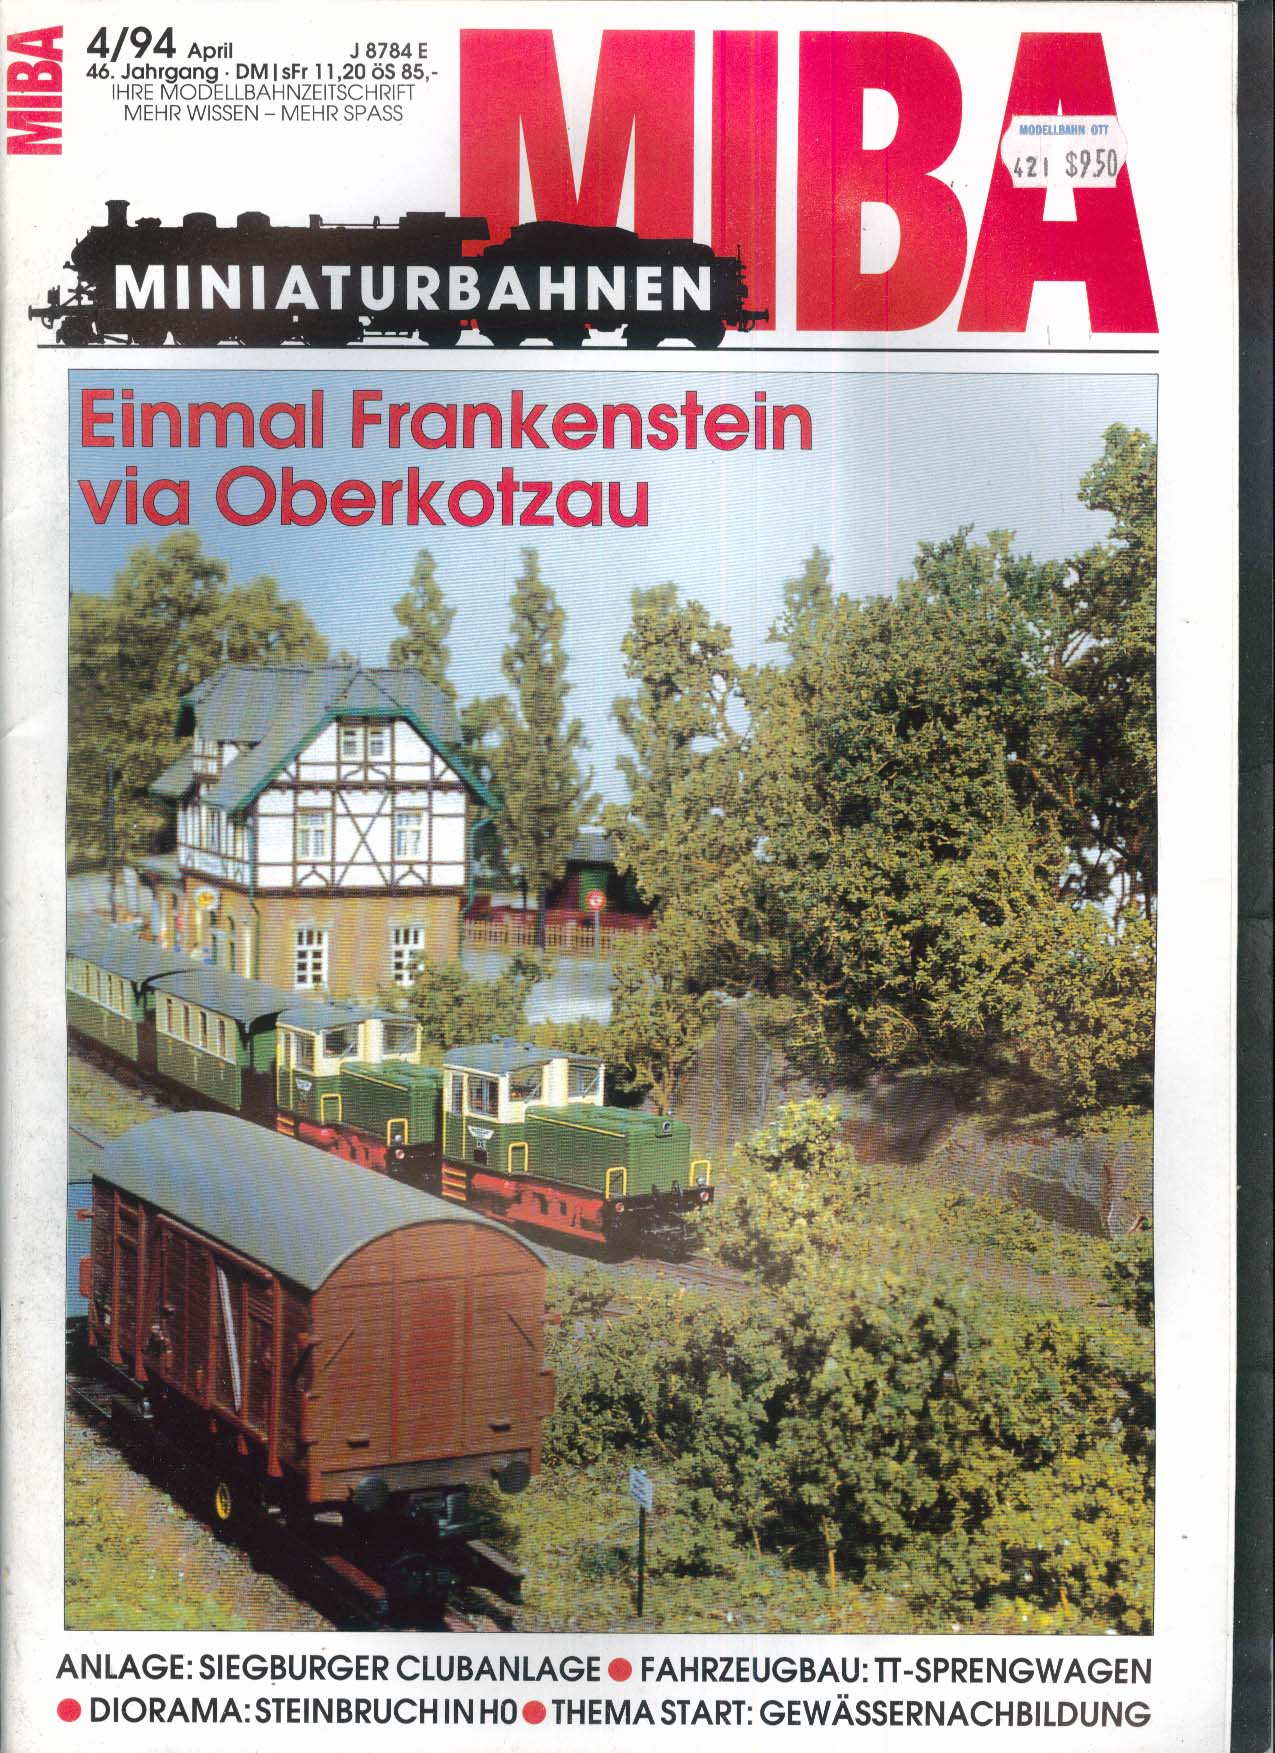 MIBA-Miniaturbahnen German-language model train magazine Fahrzeugbau 4 1994